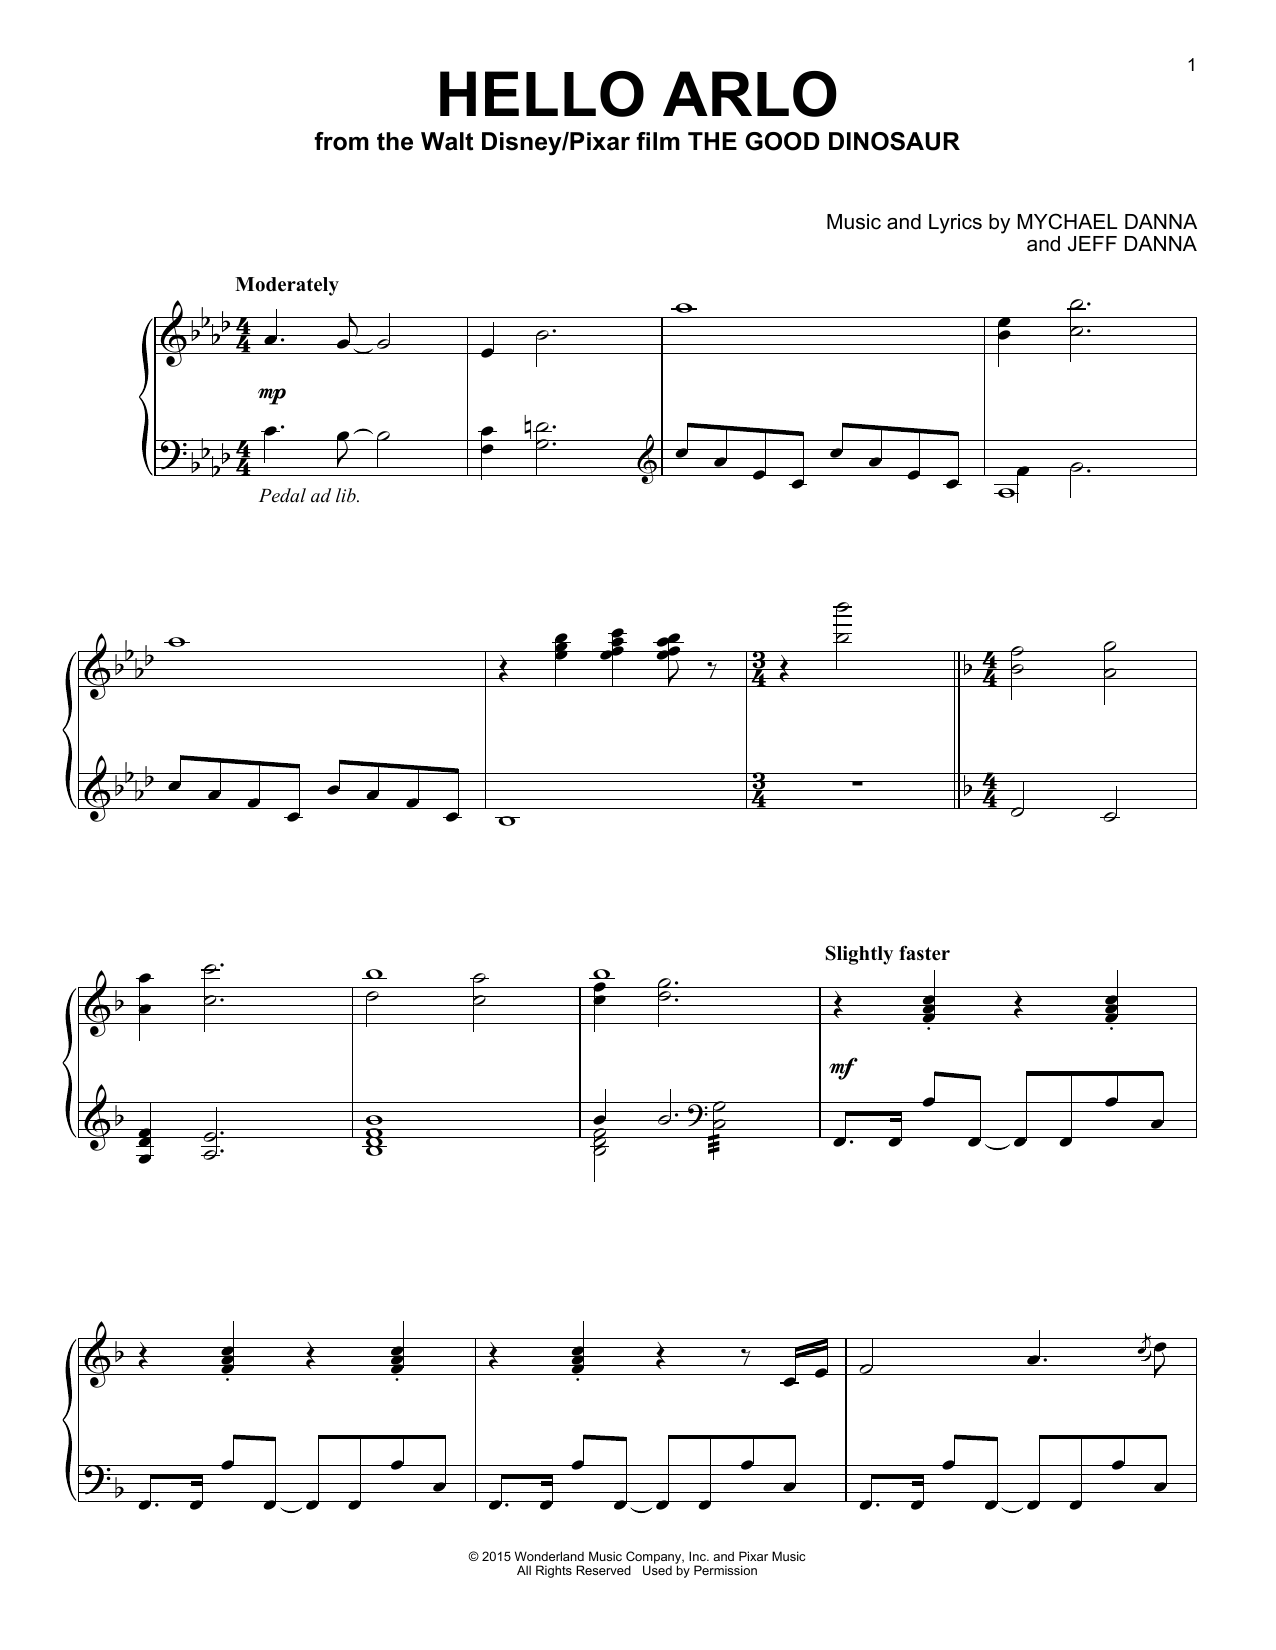 Mychael & Jeff Danna Hello Arlo sheet music notes and chords. Download Printable PDF.